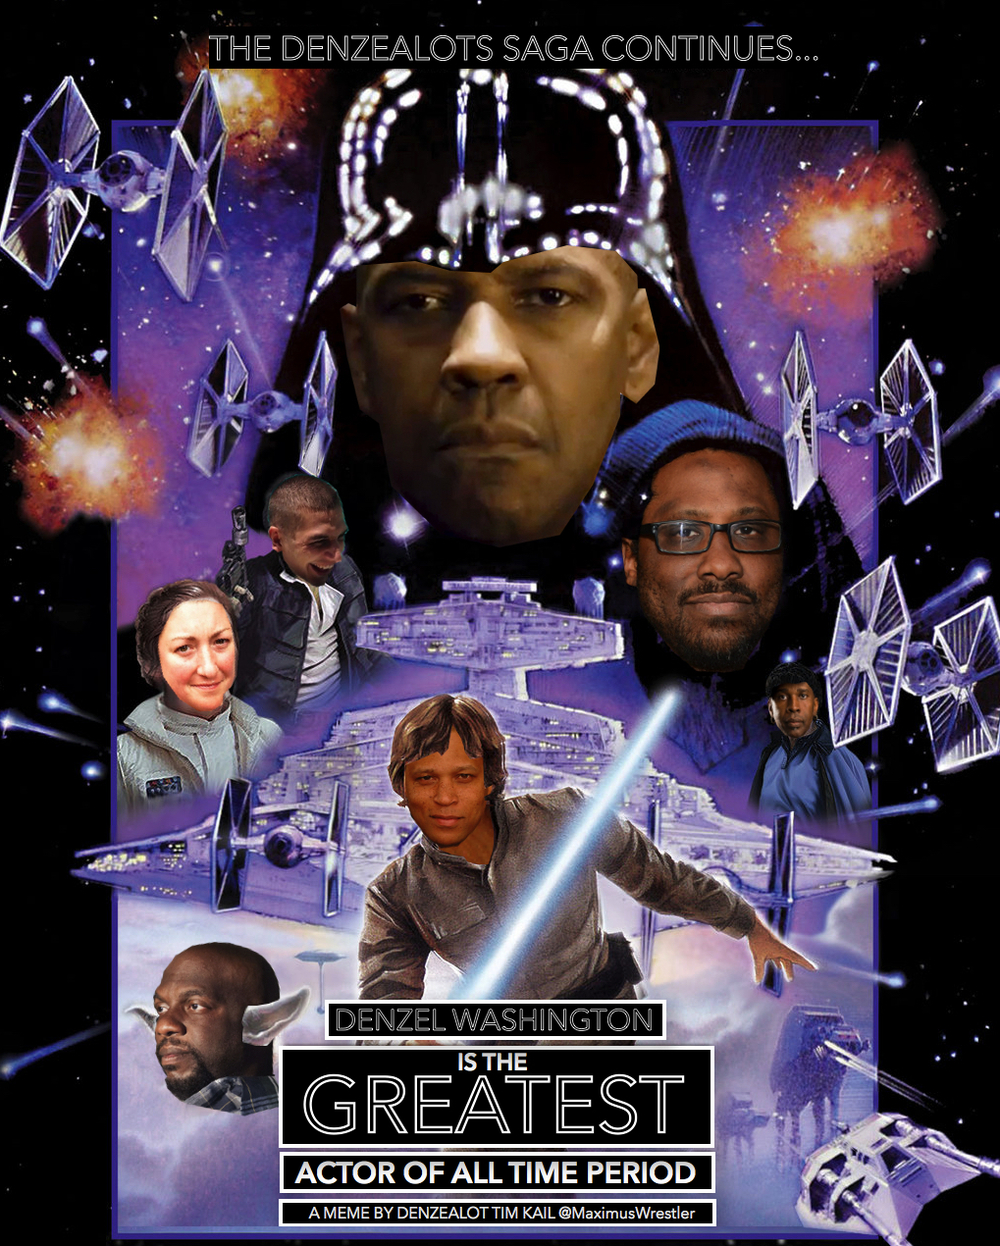 One of the memes I've made in honor of the show, inspired primarily by Kevin's love of Star Wars.